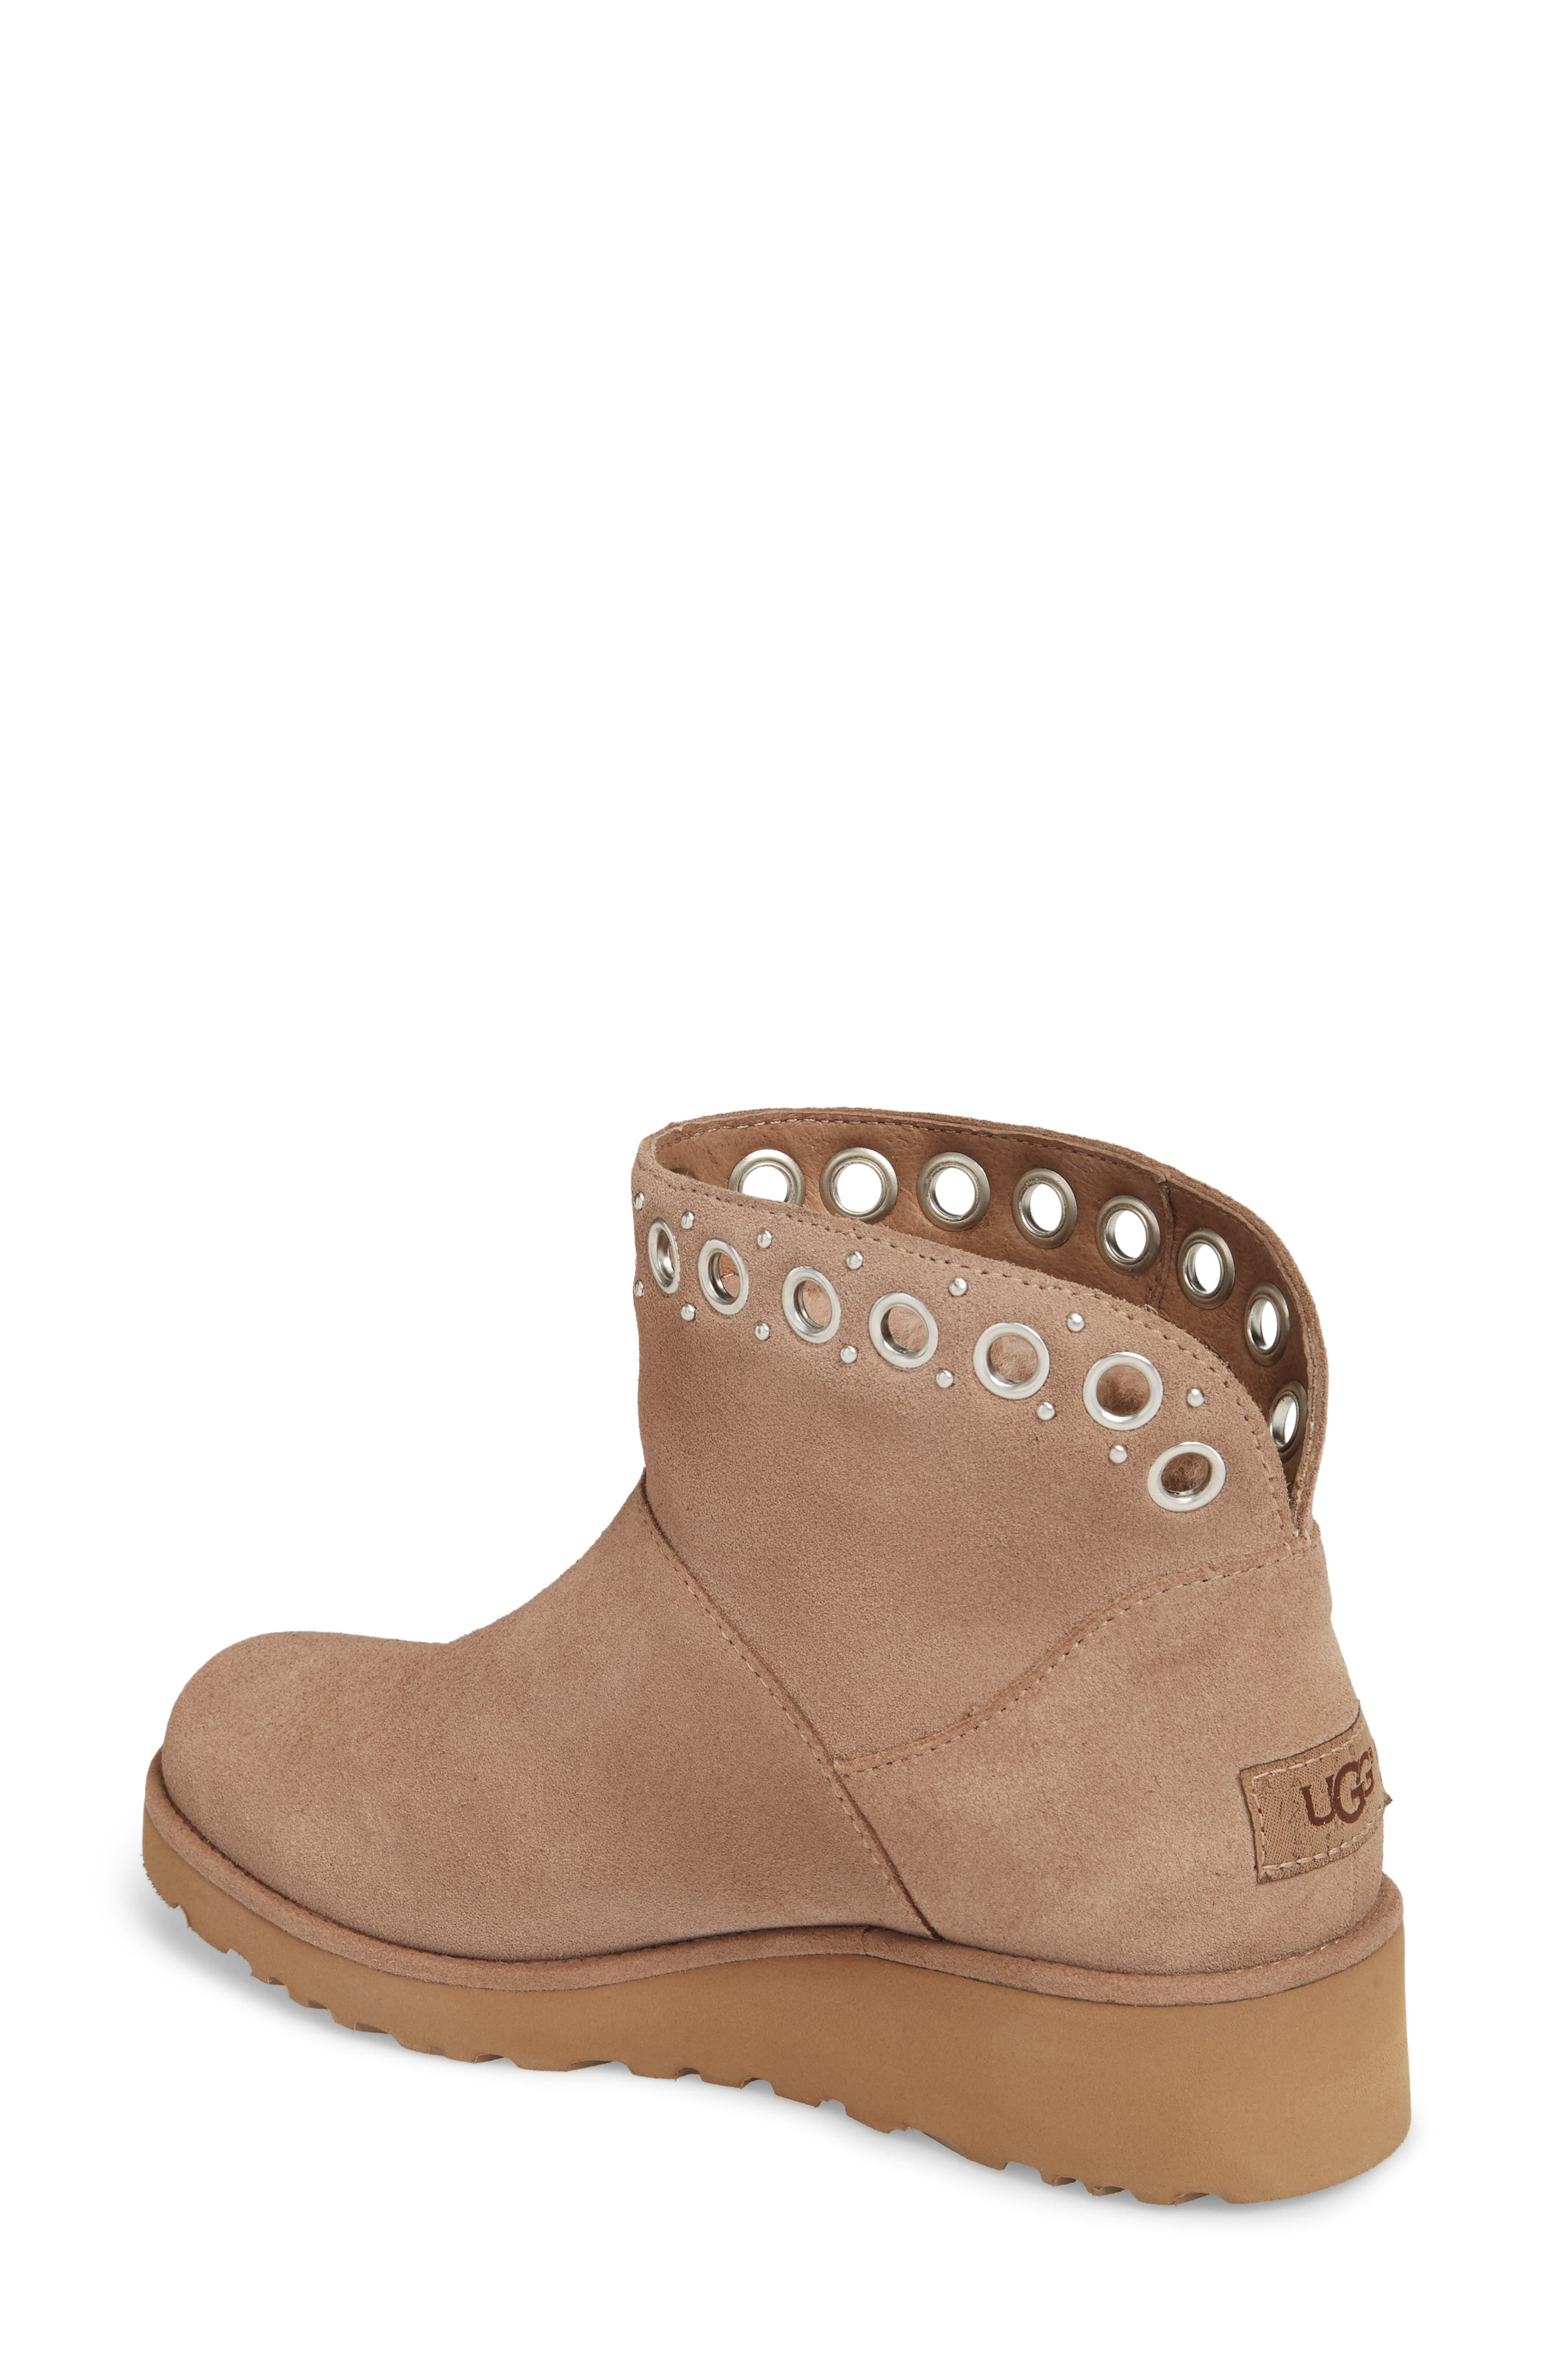 Riley Grommet Wedge Boot,                             Alternate thumbnail 2, color,                             Fawn Suede